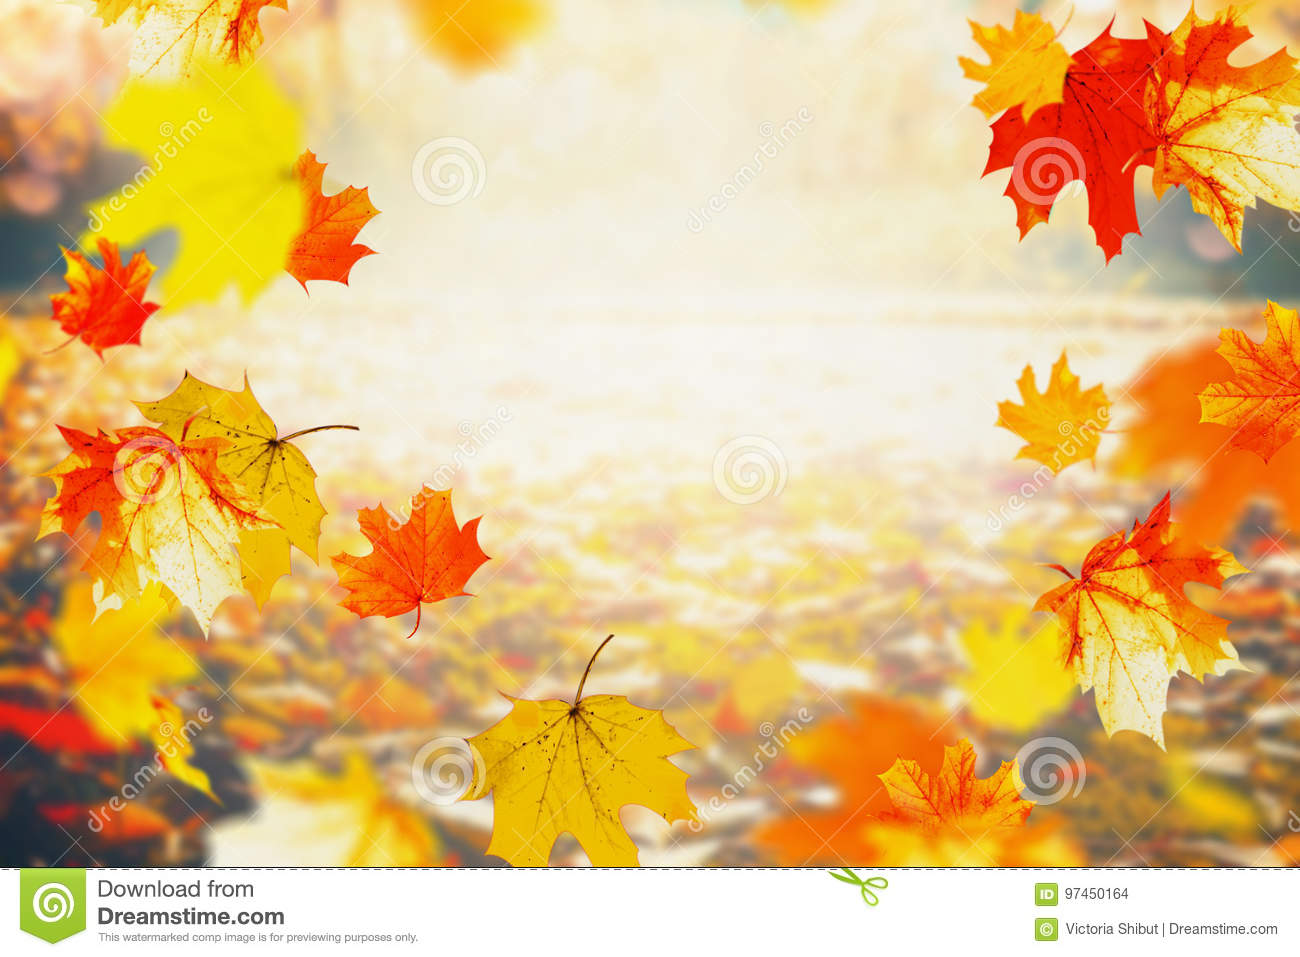 Download Autumn Colorful Falling Leaves On Sunny Day, Outdoor Fall Nature Background Stock Photo - Image of autumn, blur: 97450164